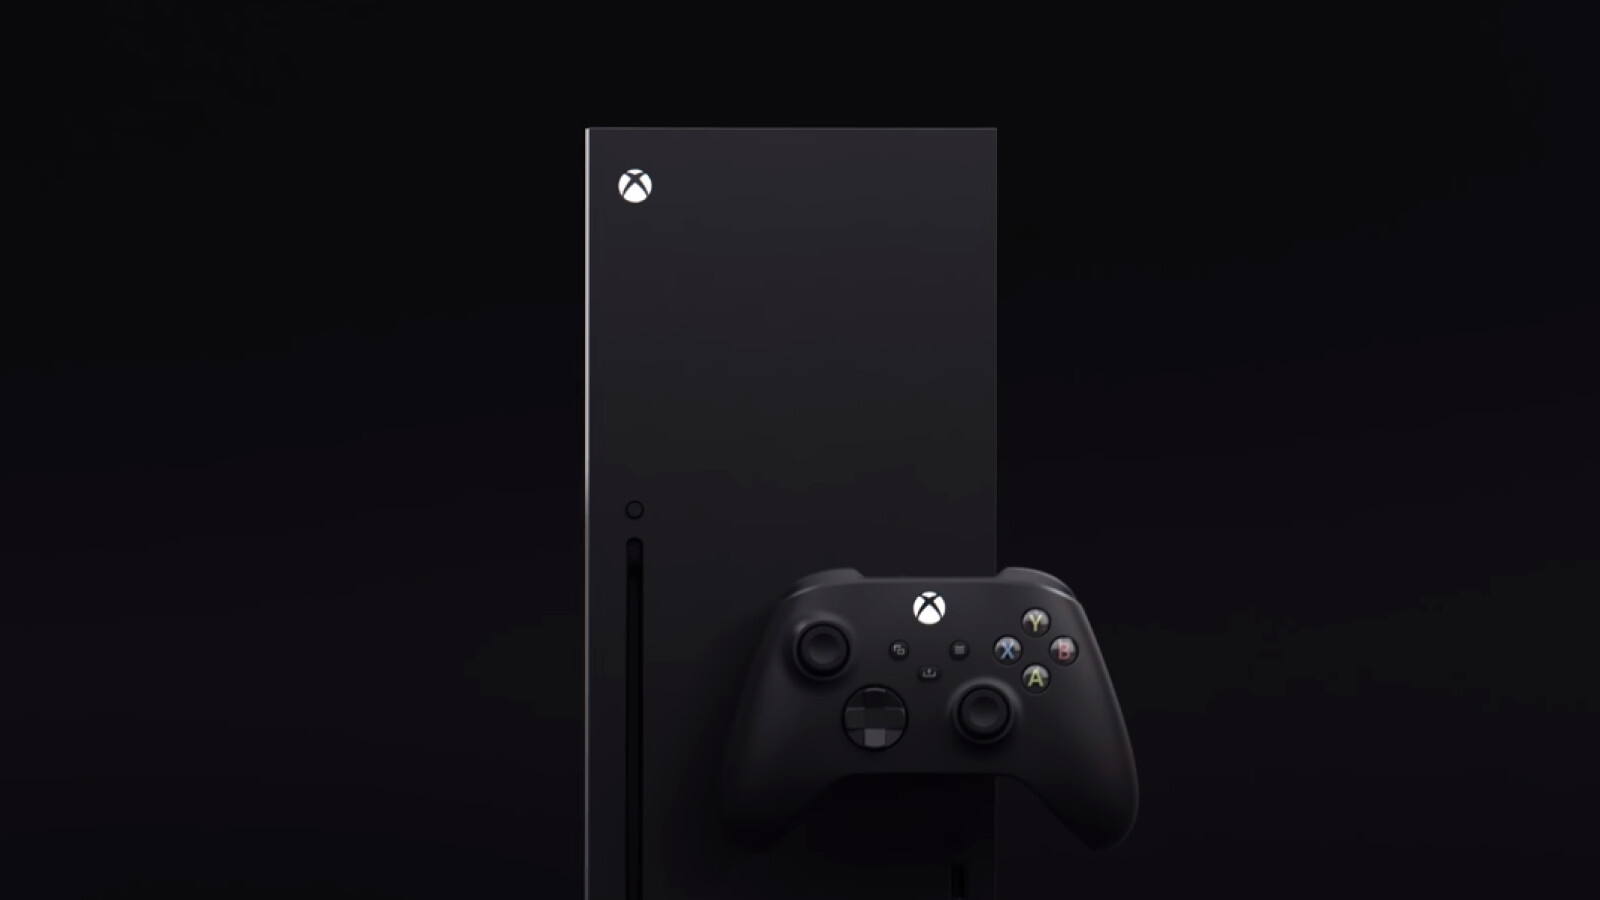 xBox vs. Playstation cover image